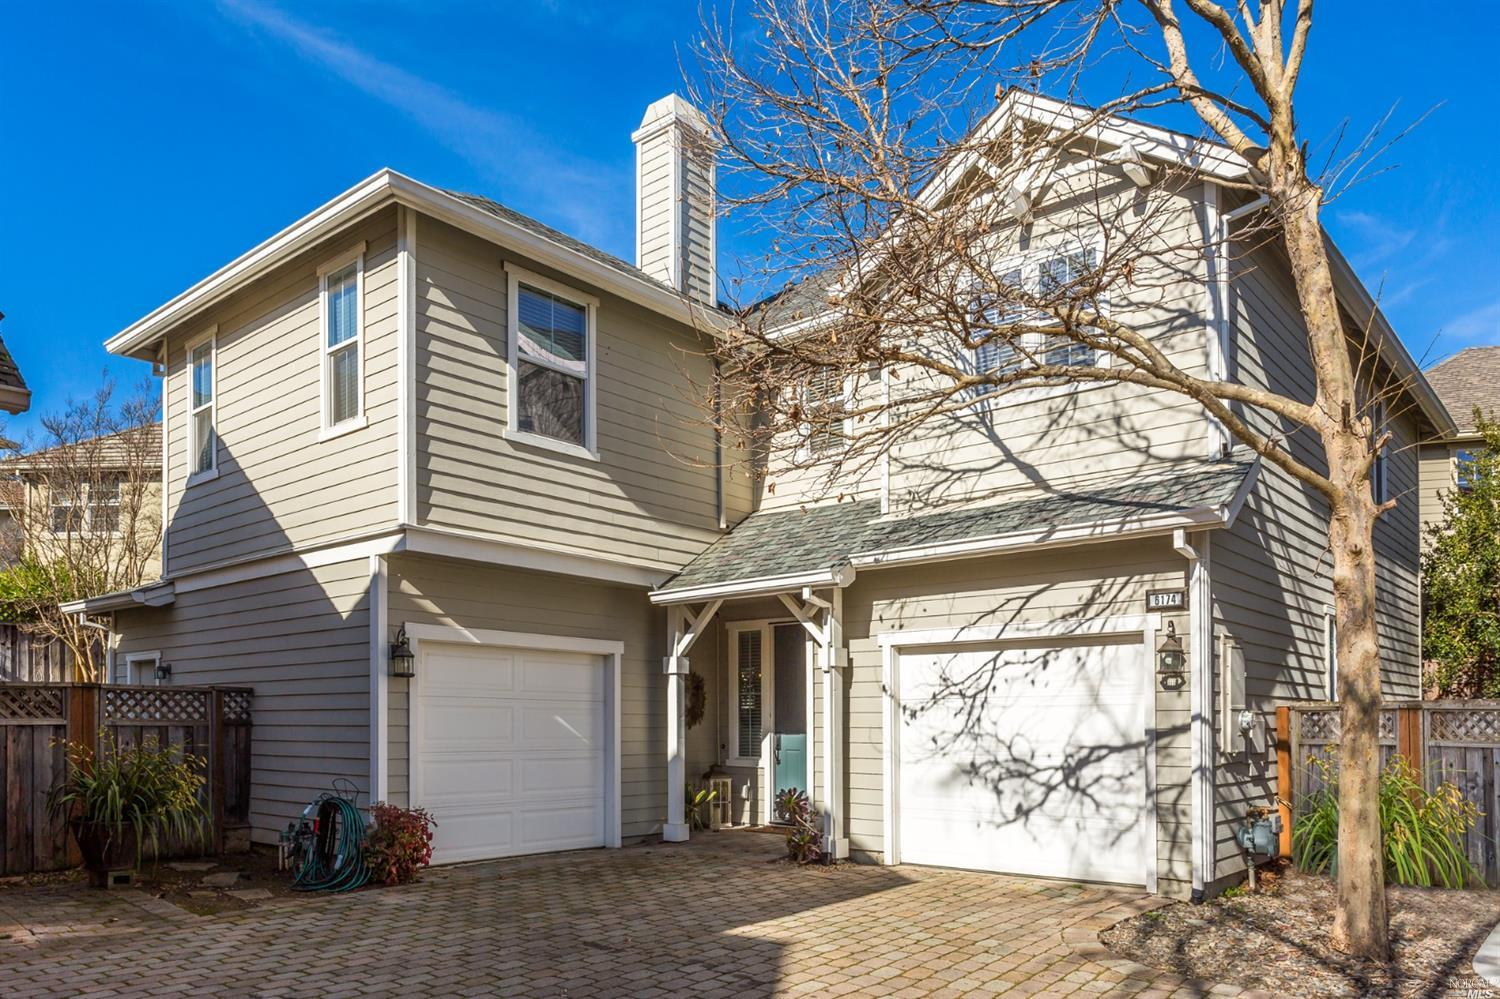 This gorgeous, well-maintained 4 bedroom/3 bath home located in the acclaimed Hiddenbrooke Golf Cour